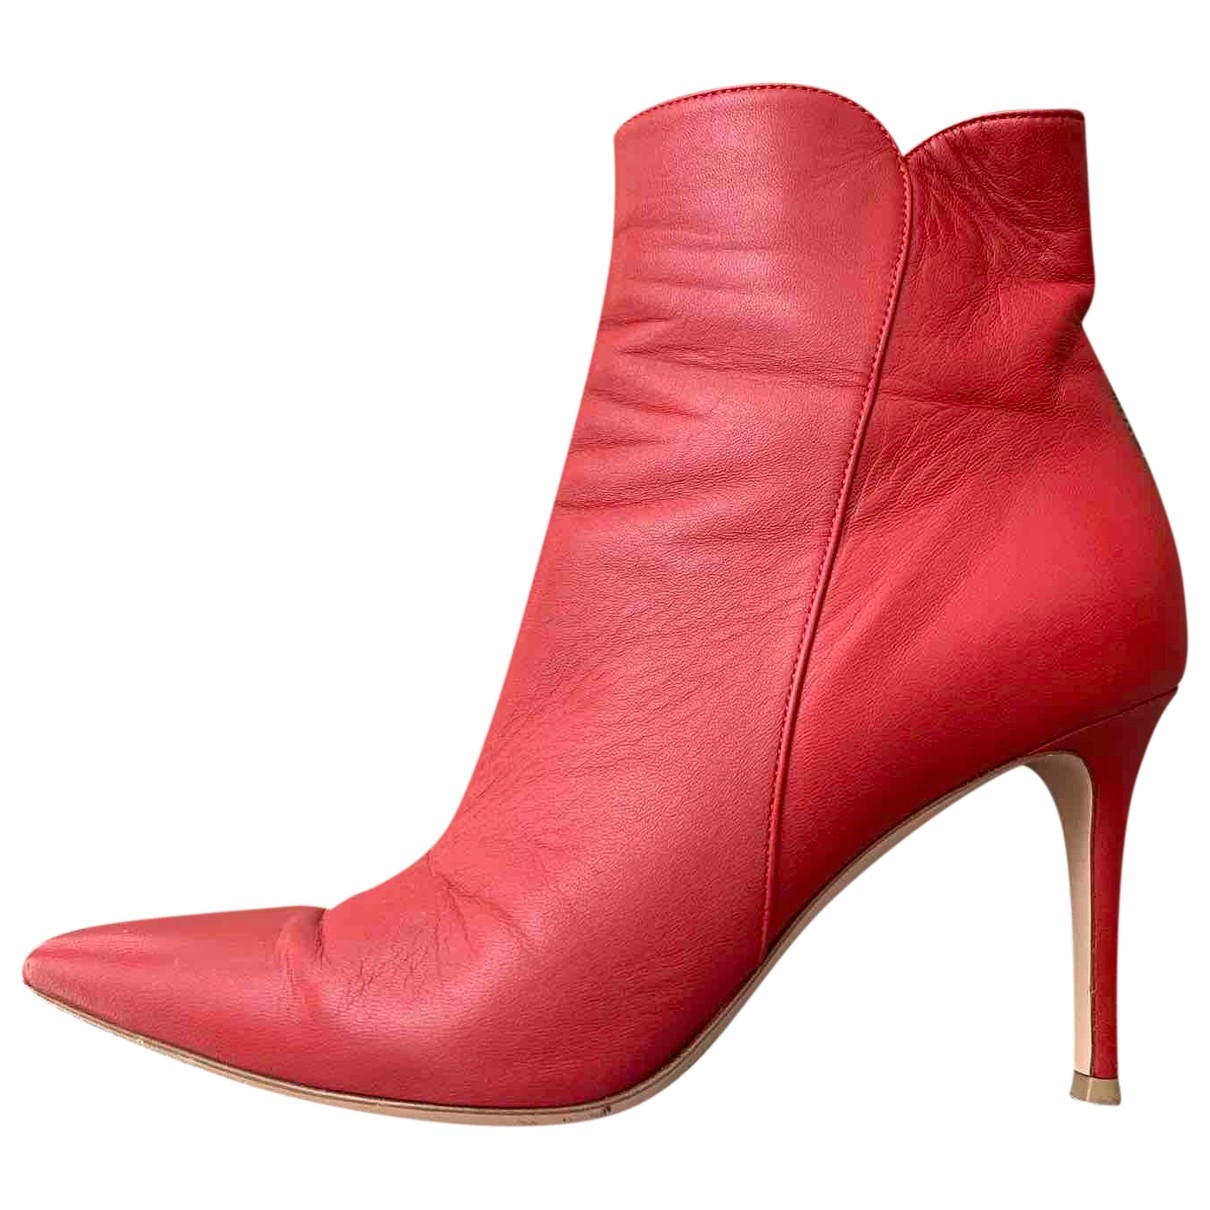 Gianvito Rossi \N Red Leather Ankle boots for Women 39 IT